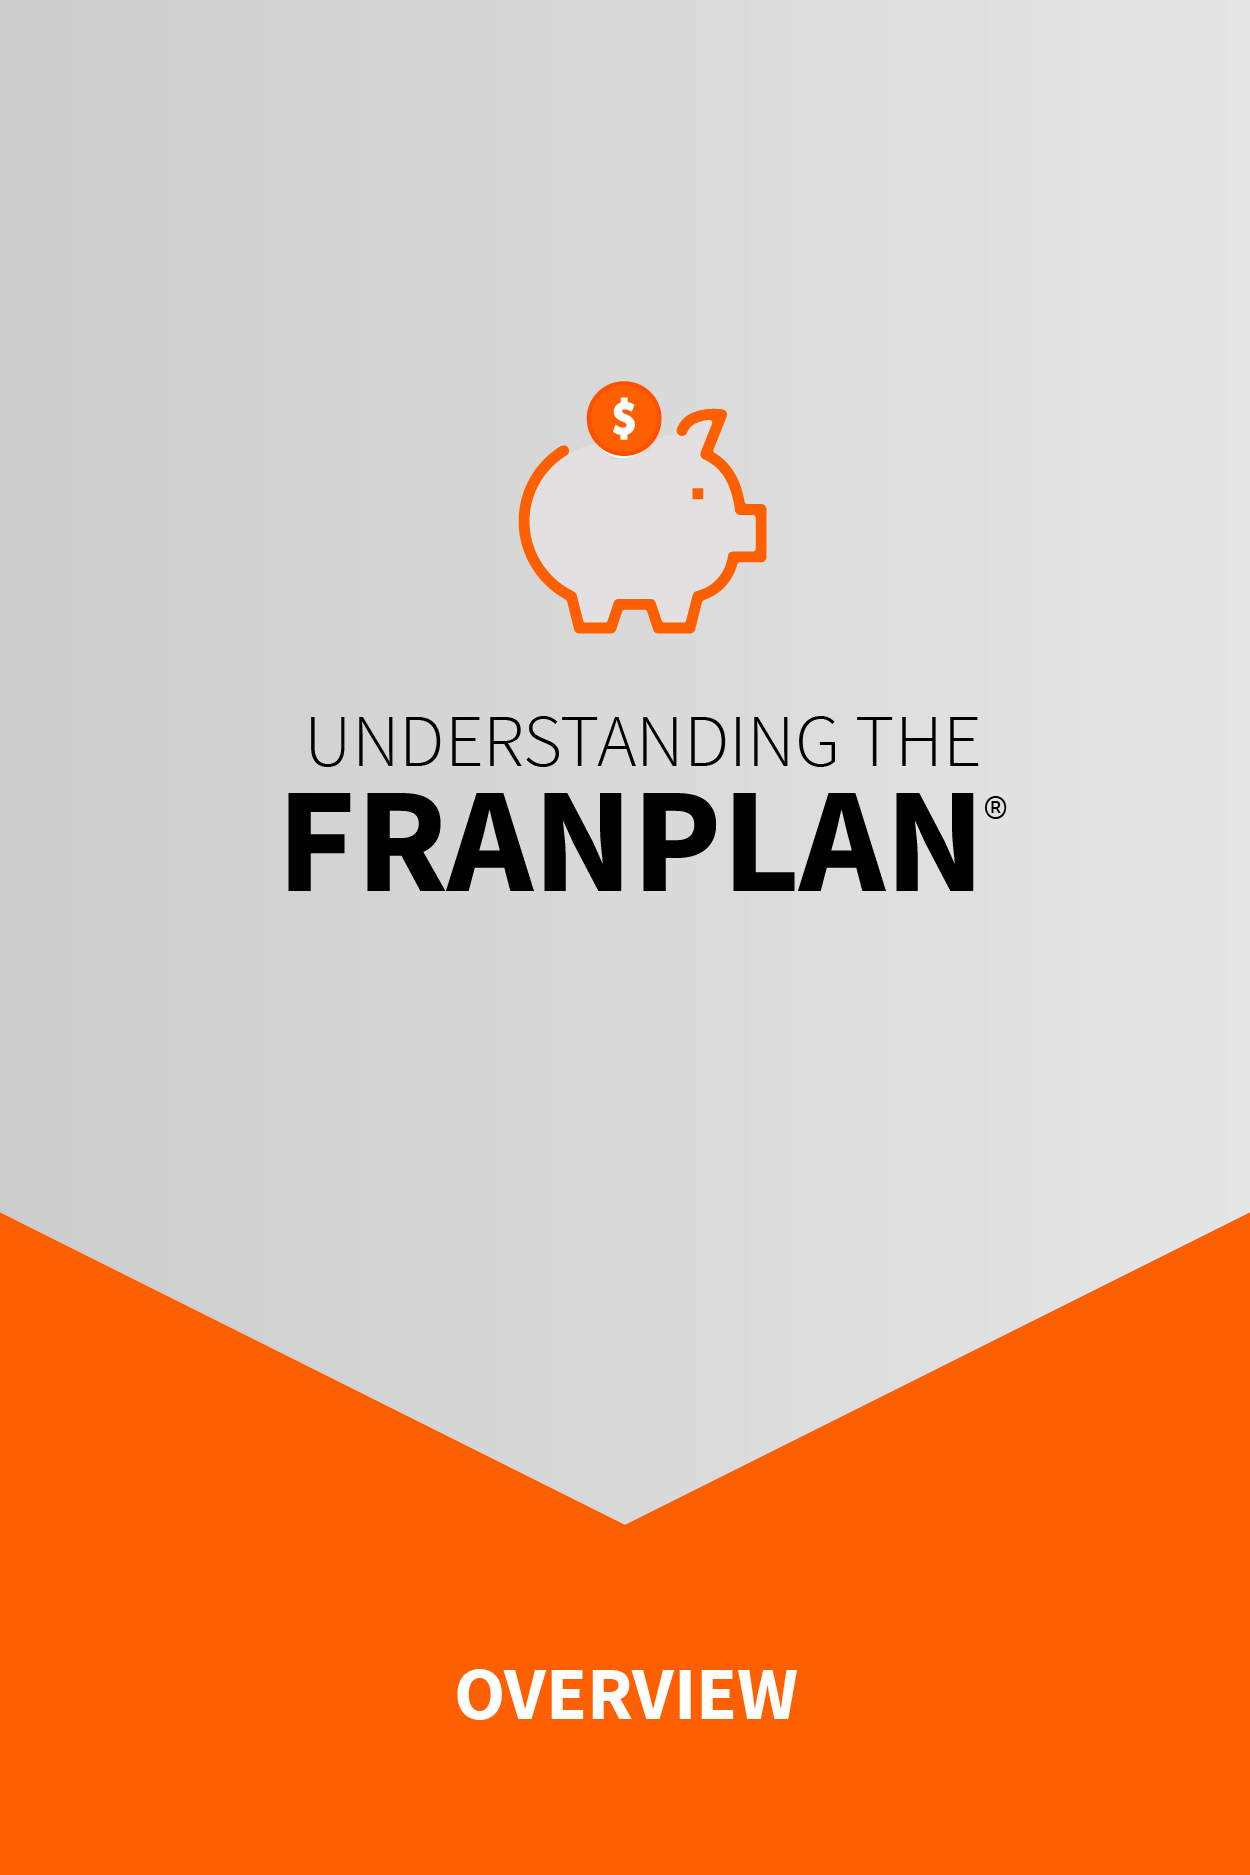 resource-download-preview-image-franplan-overview-01